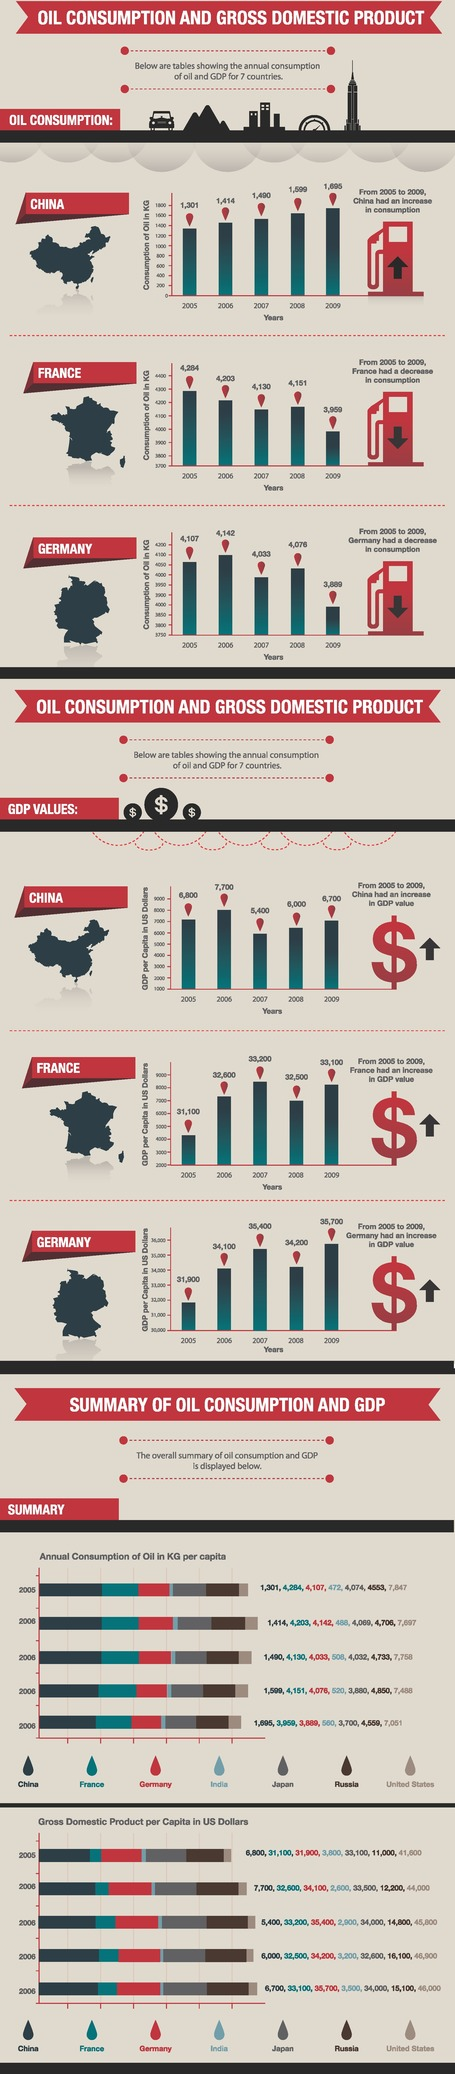 Oil Consumption and GDP [infographic] | Social Network for Logistics & Transport | Scoop.it